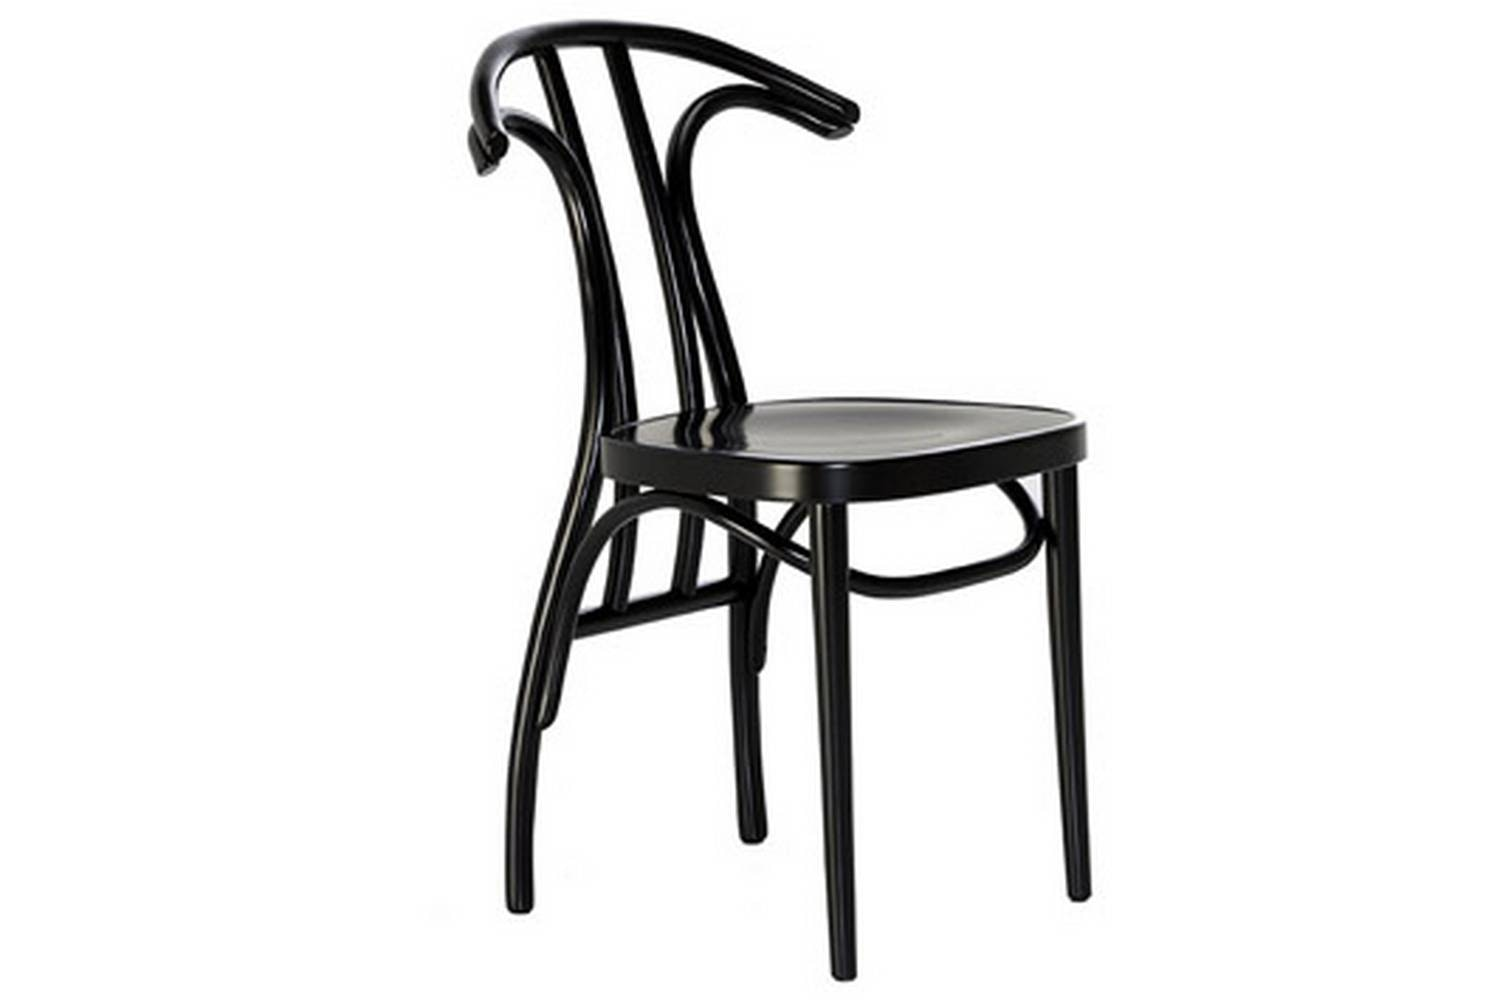 Radetzky Stuhl Chair by Michele De Lucchi for Wiener GTV Design